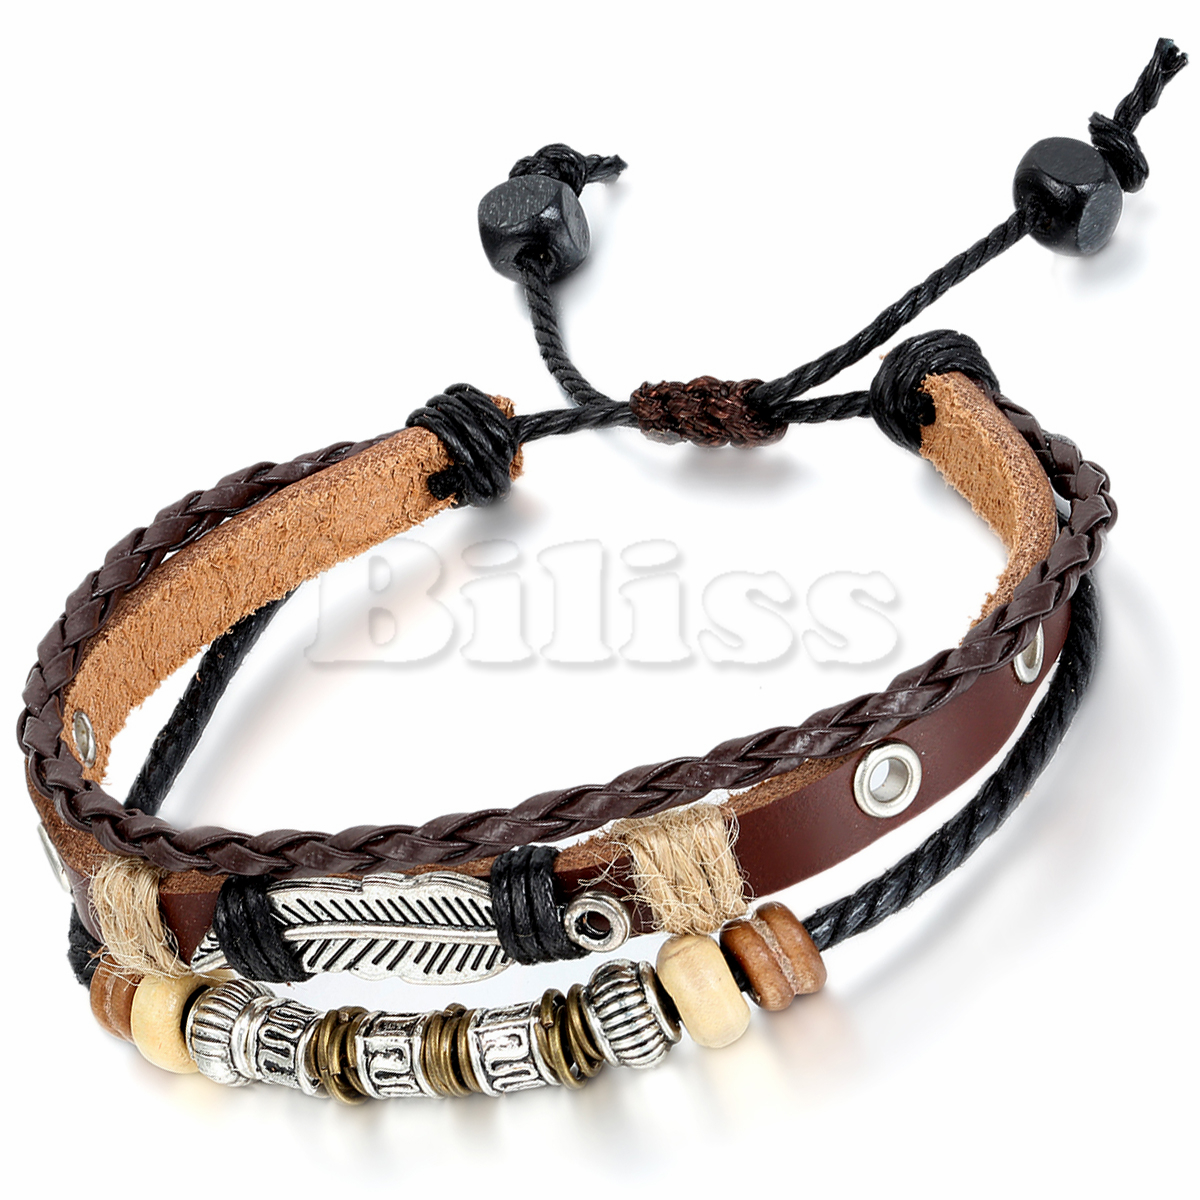 Online Vintage Mens Womens Handmade Tribal Leather Bracelet Feather Charm Beads Braided Multilayer Brown Adjule Aliexpress Mobile